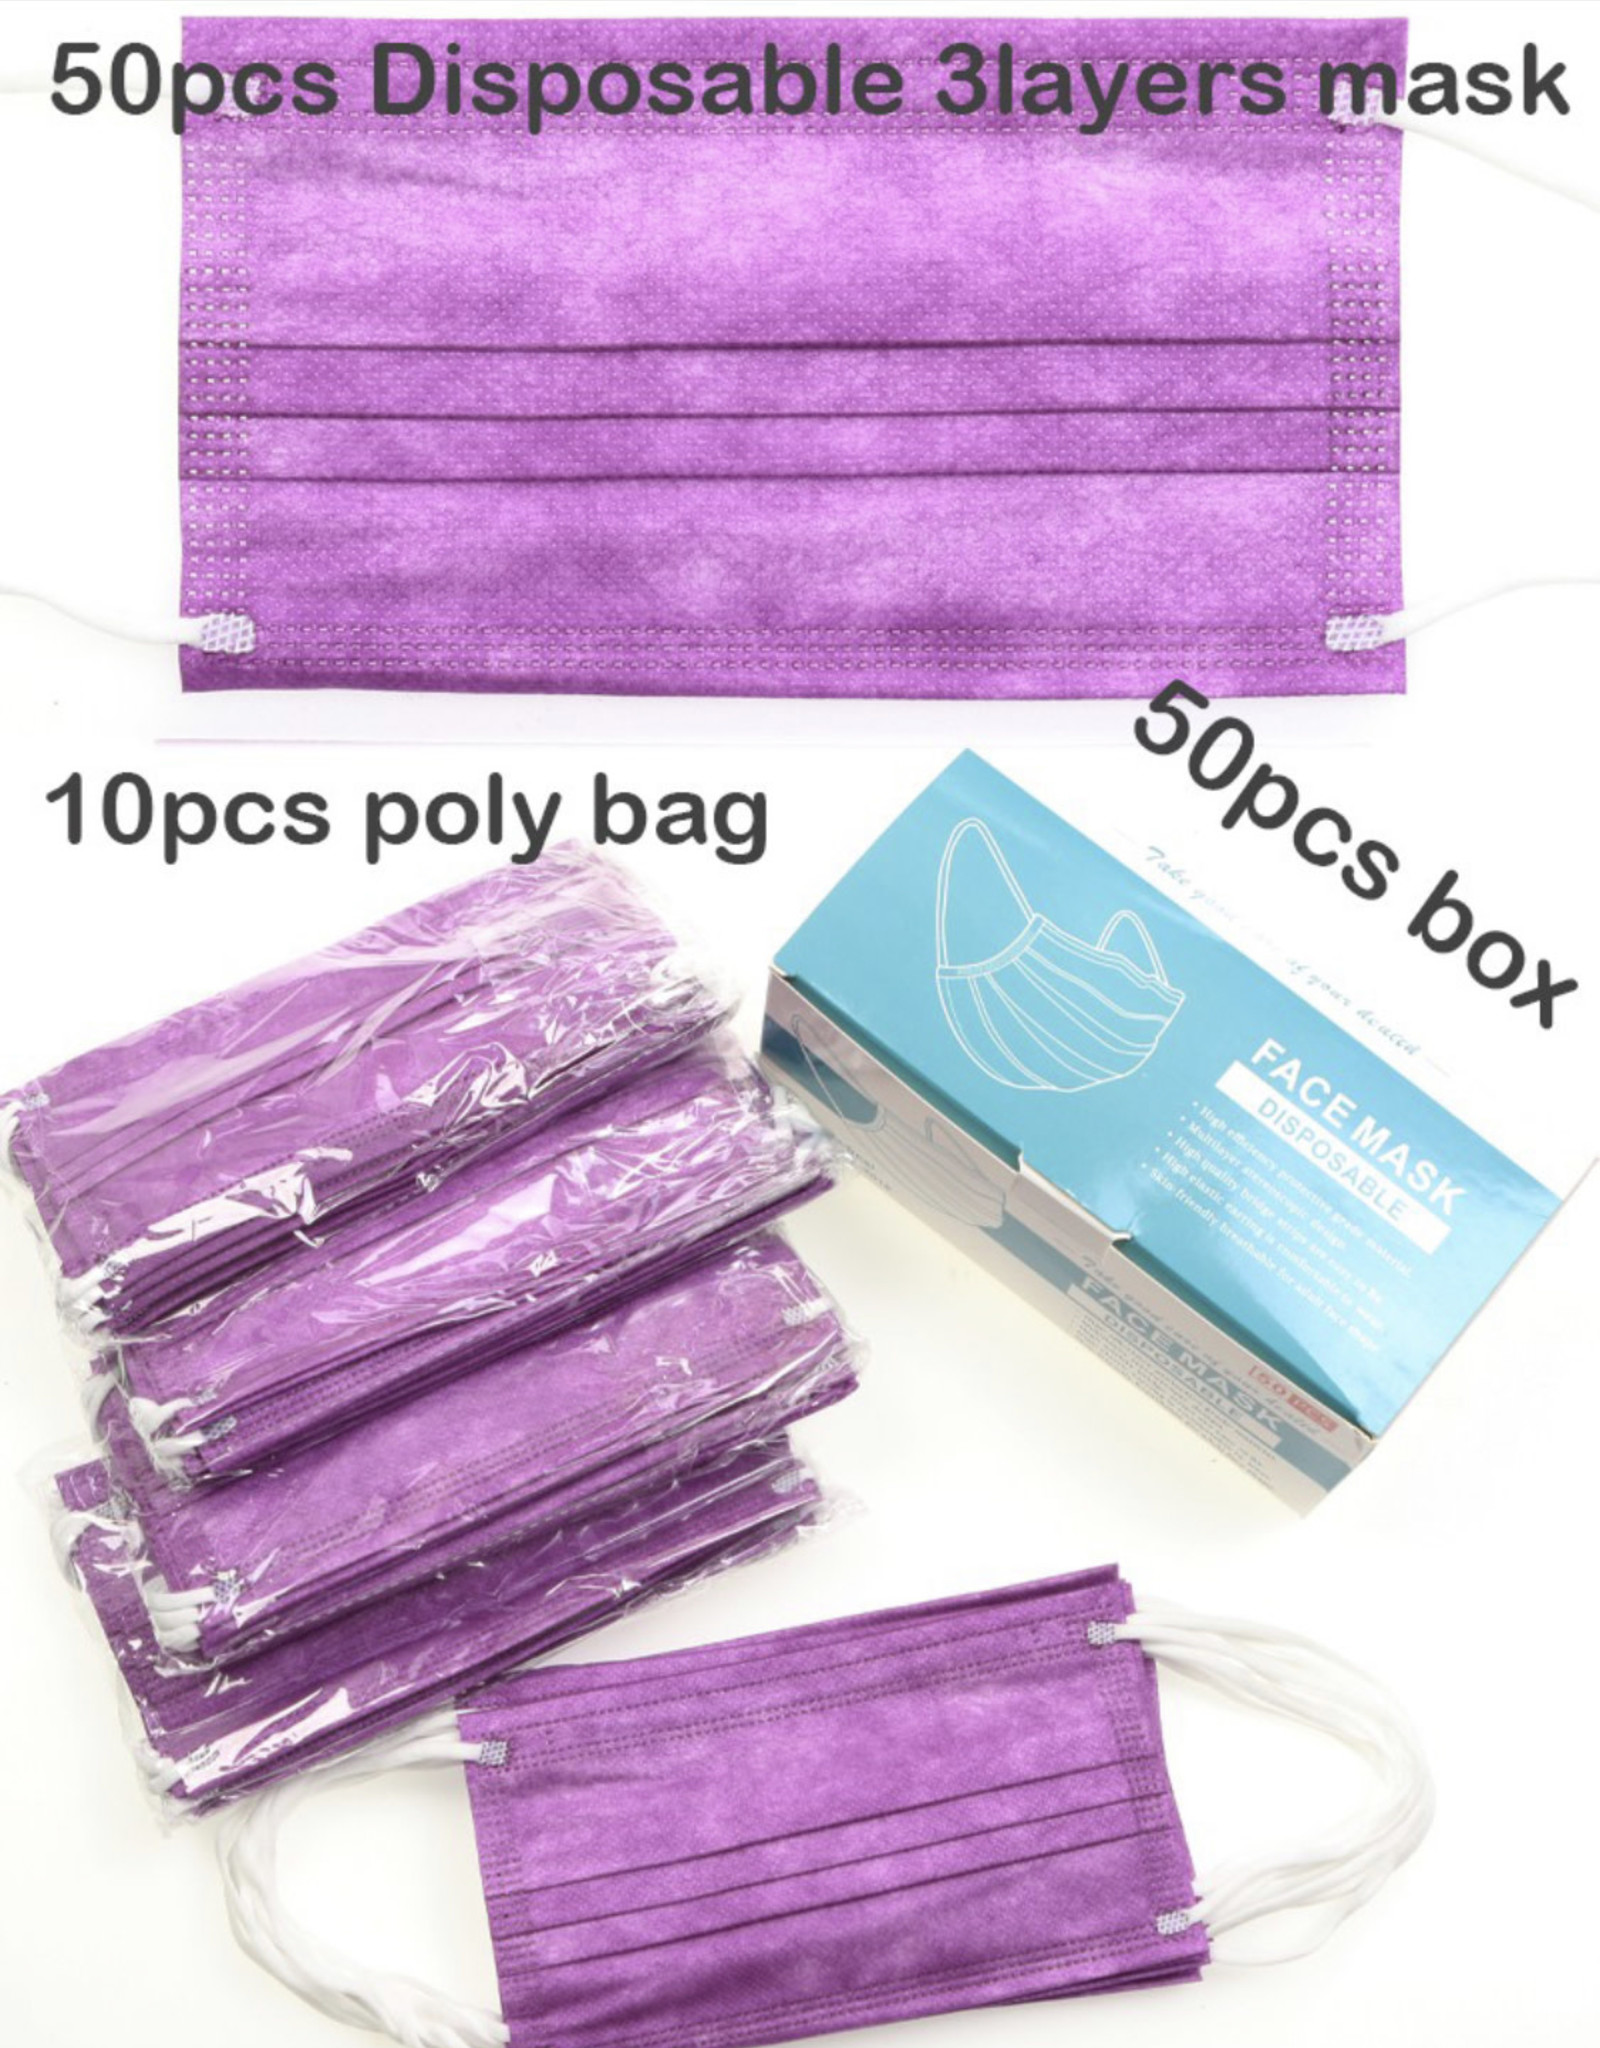 FACE MASK 50 PACK DISPOSABLE PURPLE